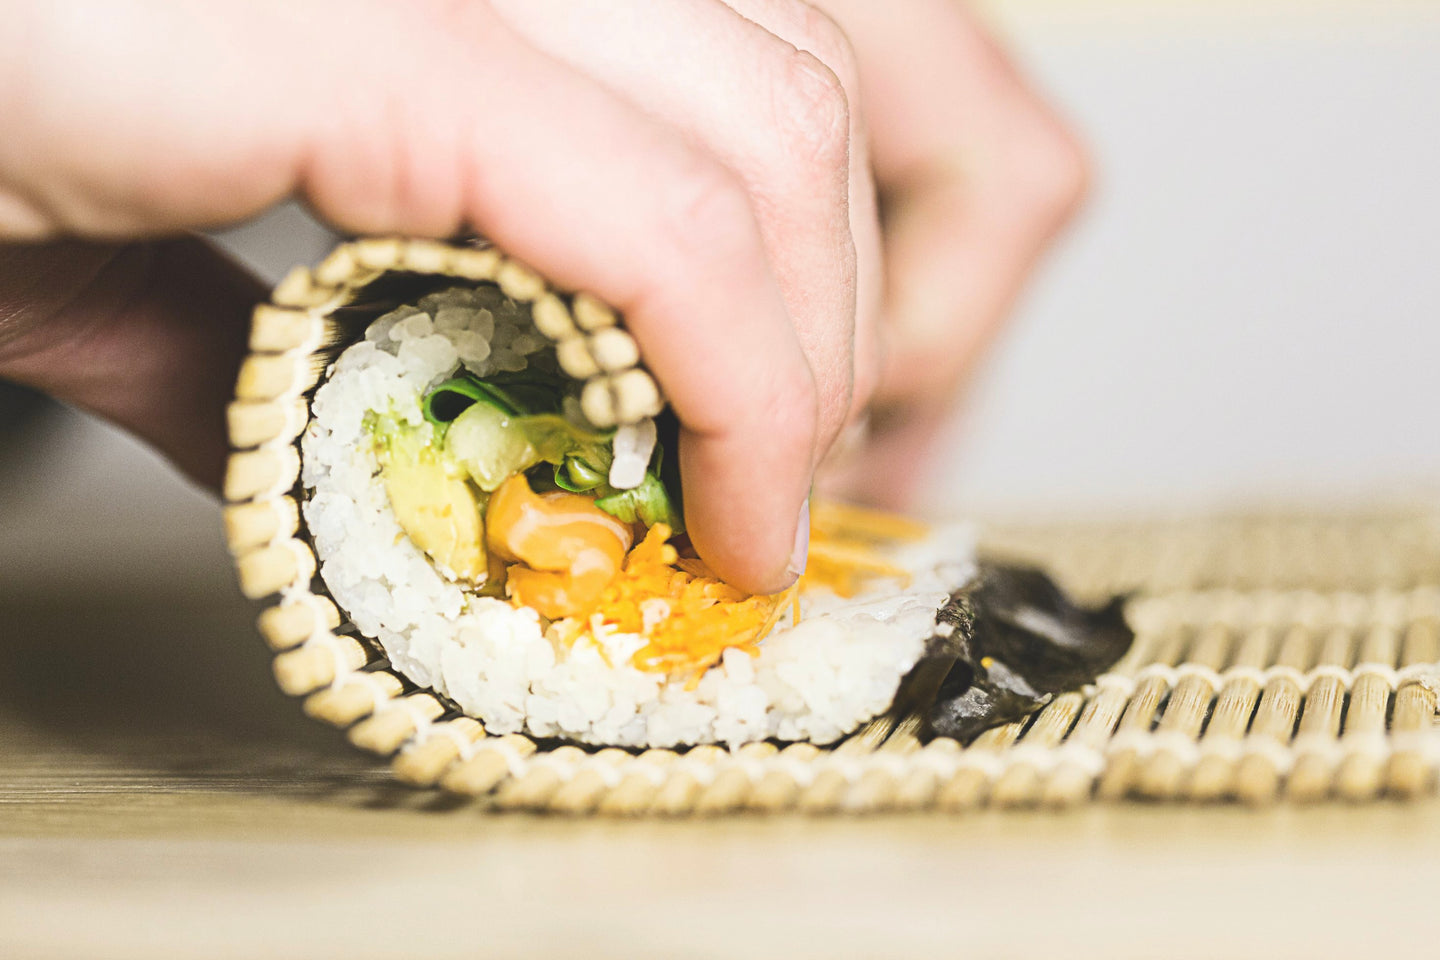 Sushi-Making Products